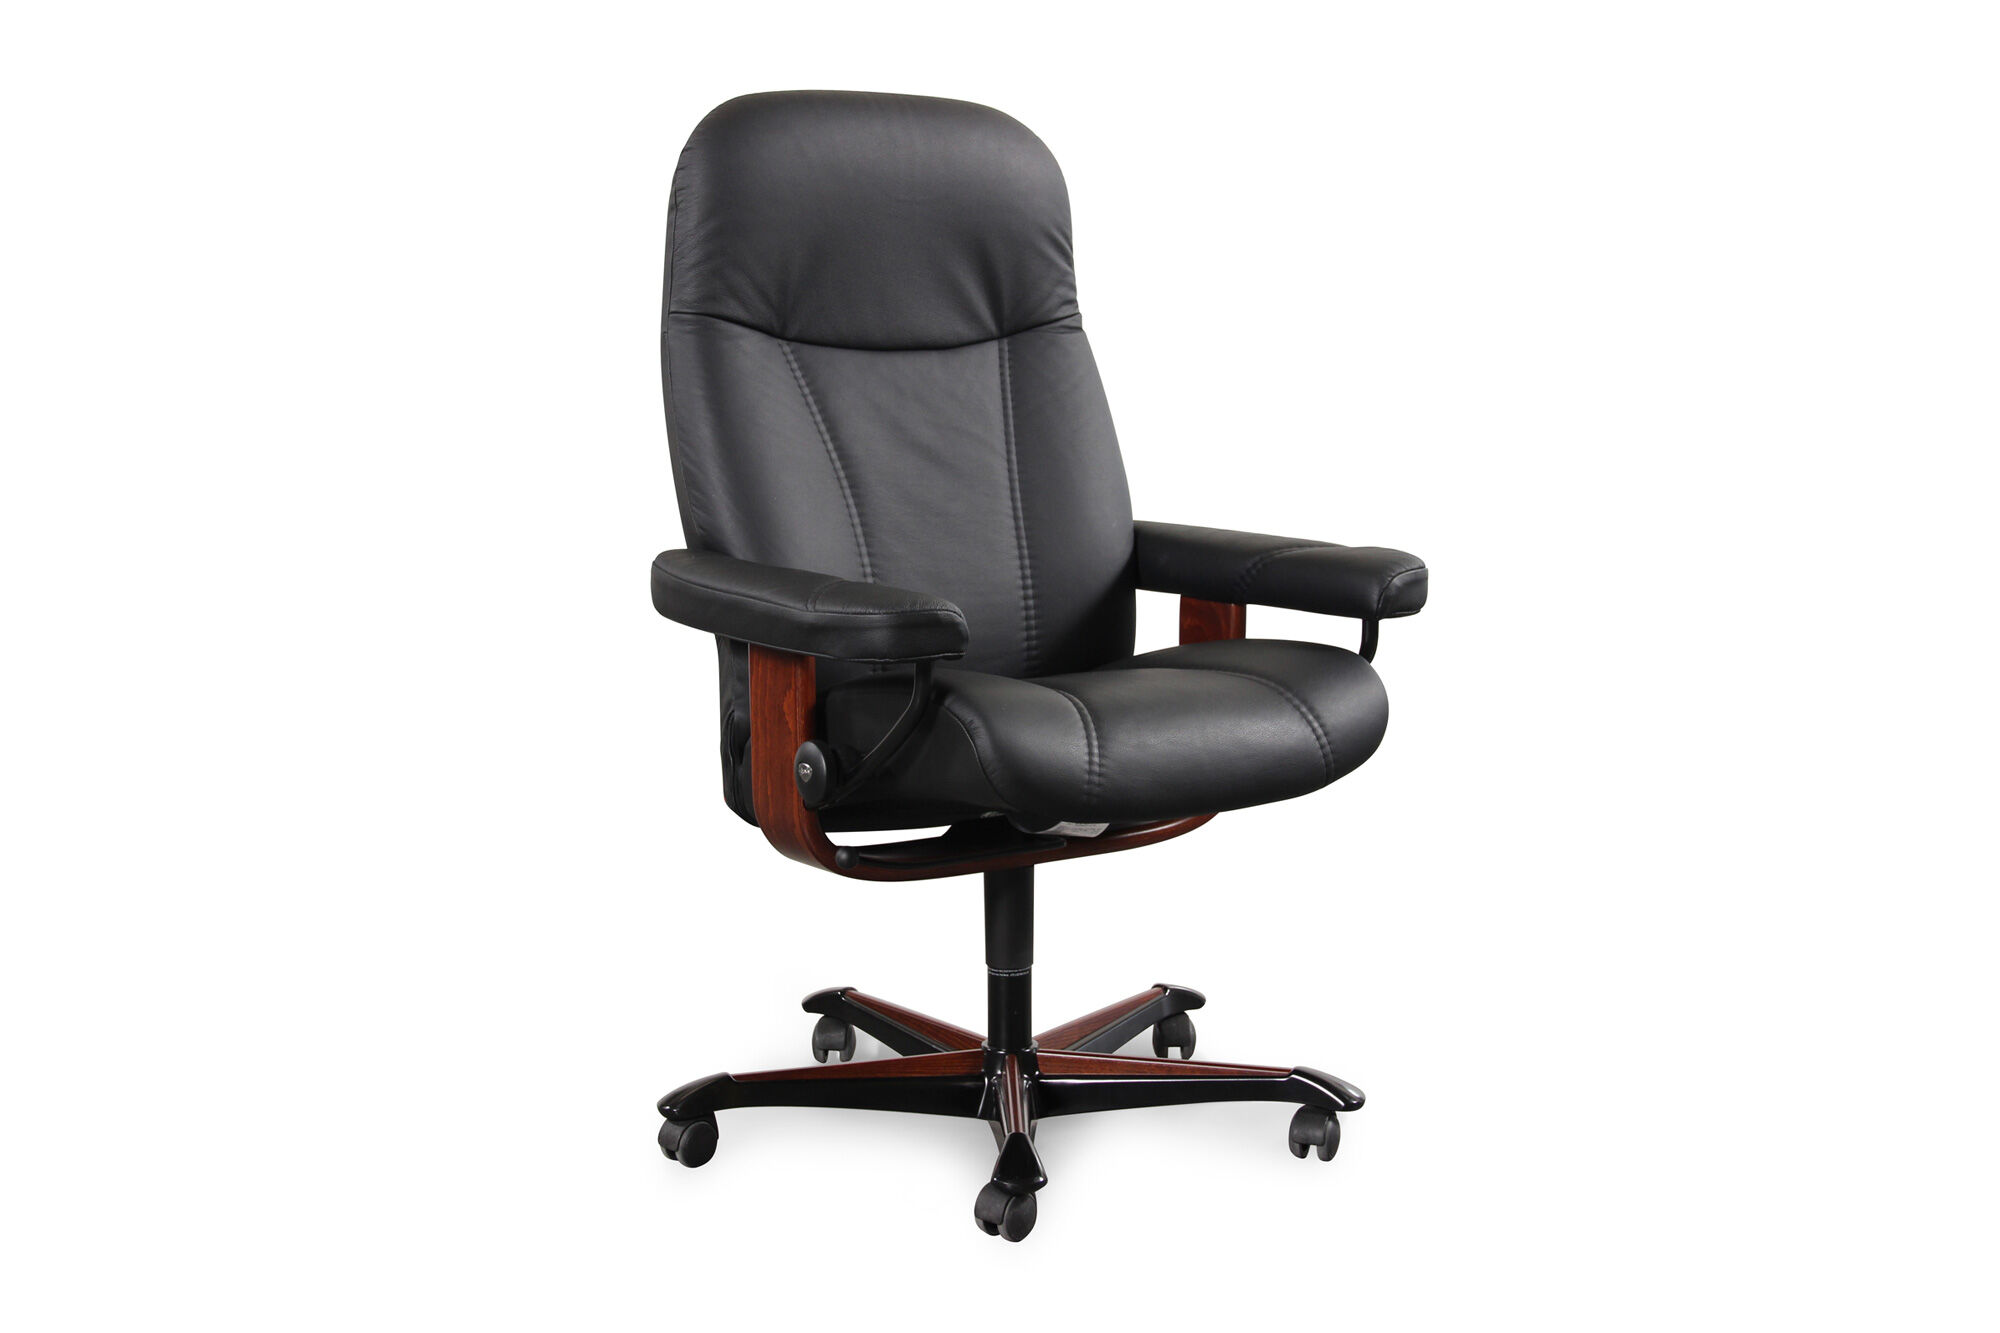 Ergonomic Swivel Office Chair Leather Ergonomic Swivel Office Chair In Black Mathis